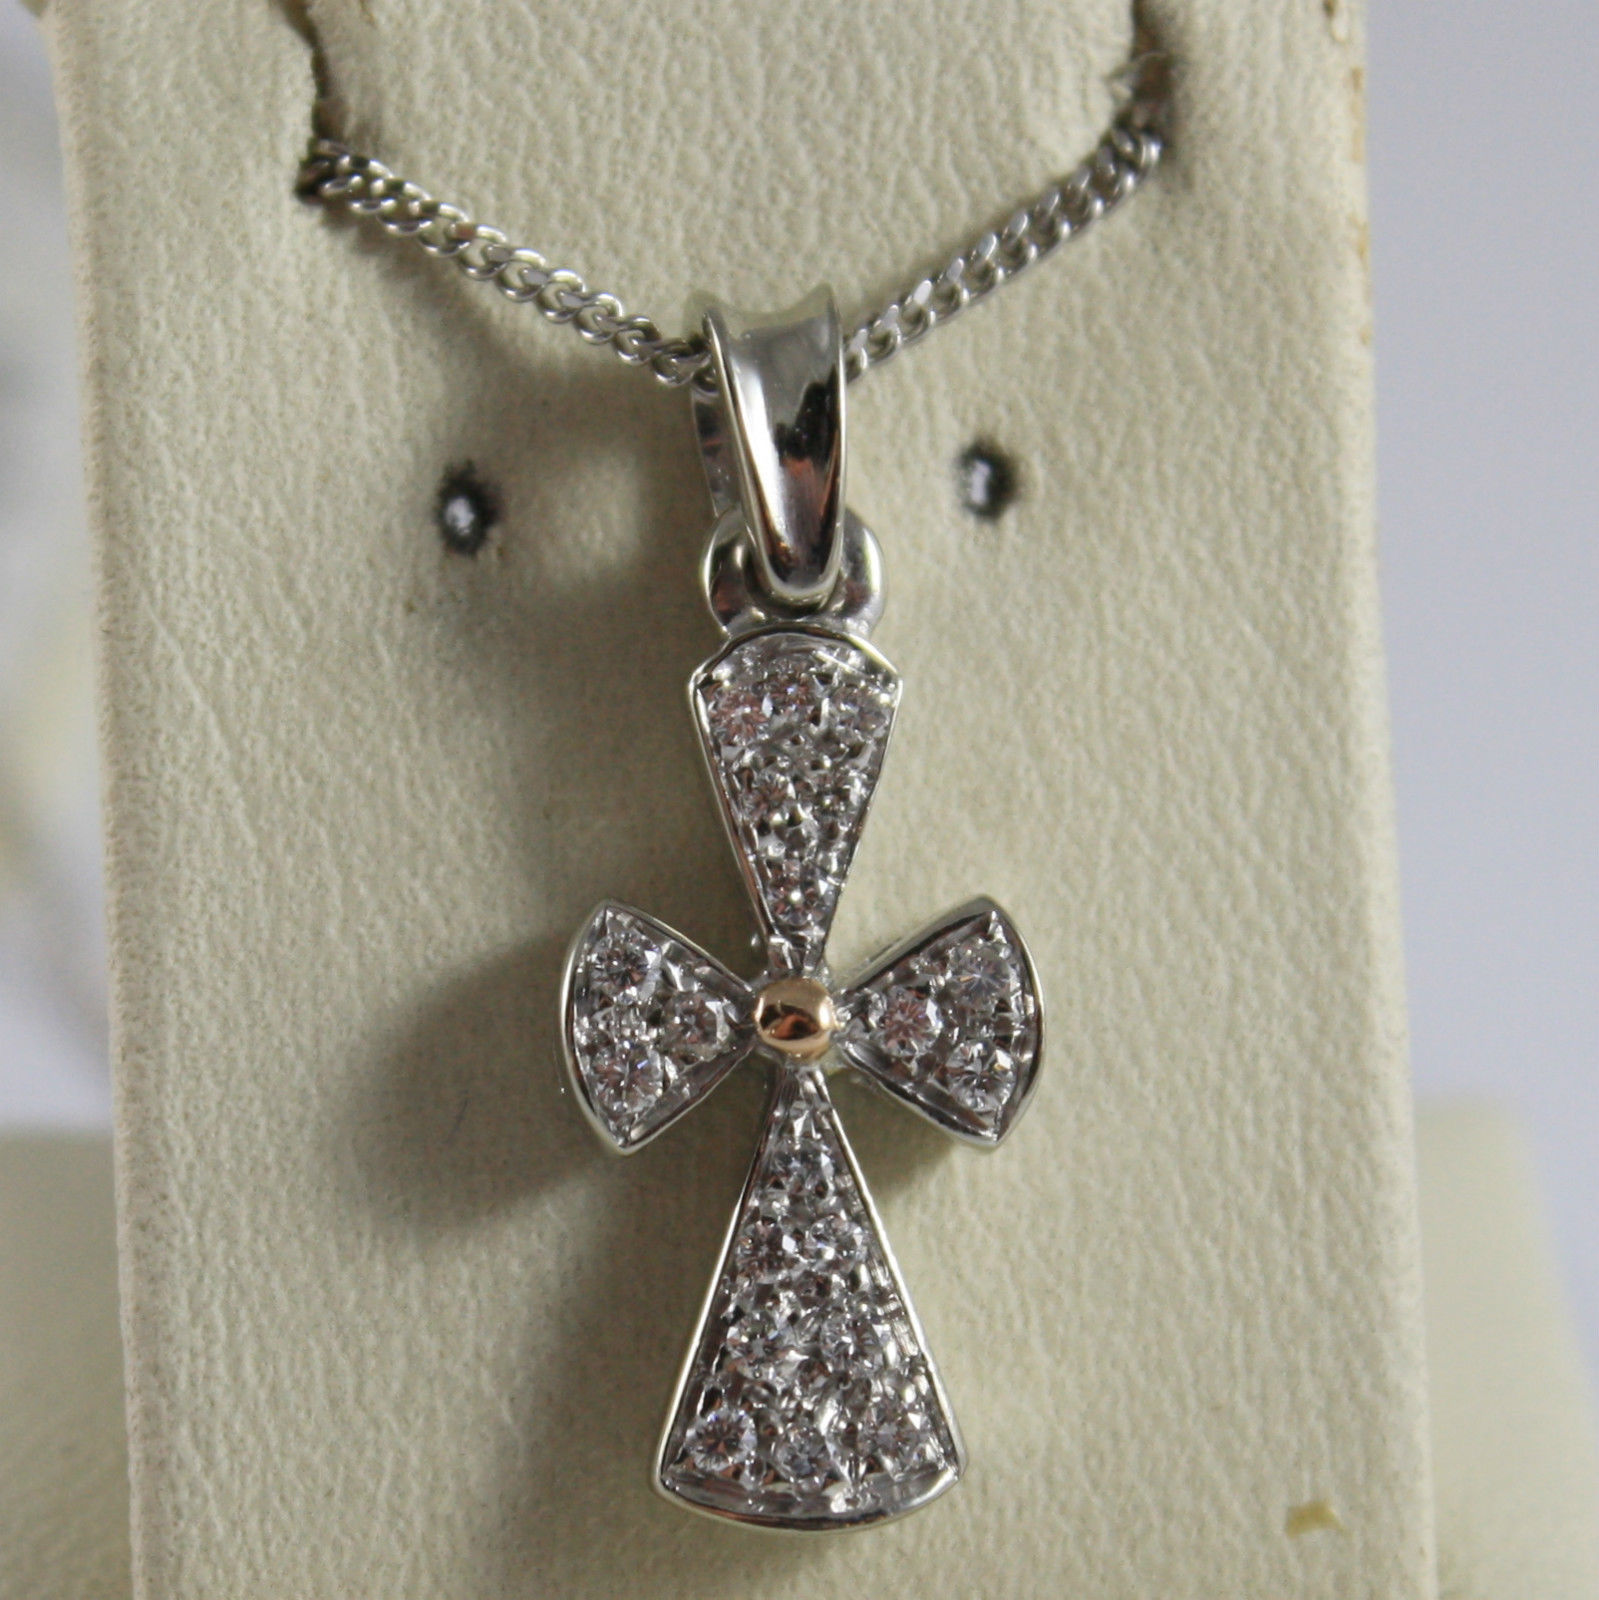 SOLID 18K WHITE GOLD NECKLACE WITH CROSS, DIAMONDS, DIAMOND MADE IN ITALY